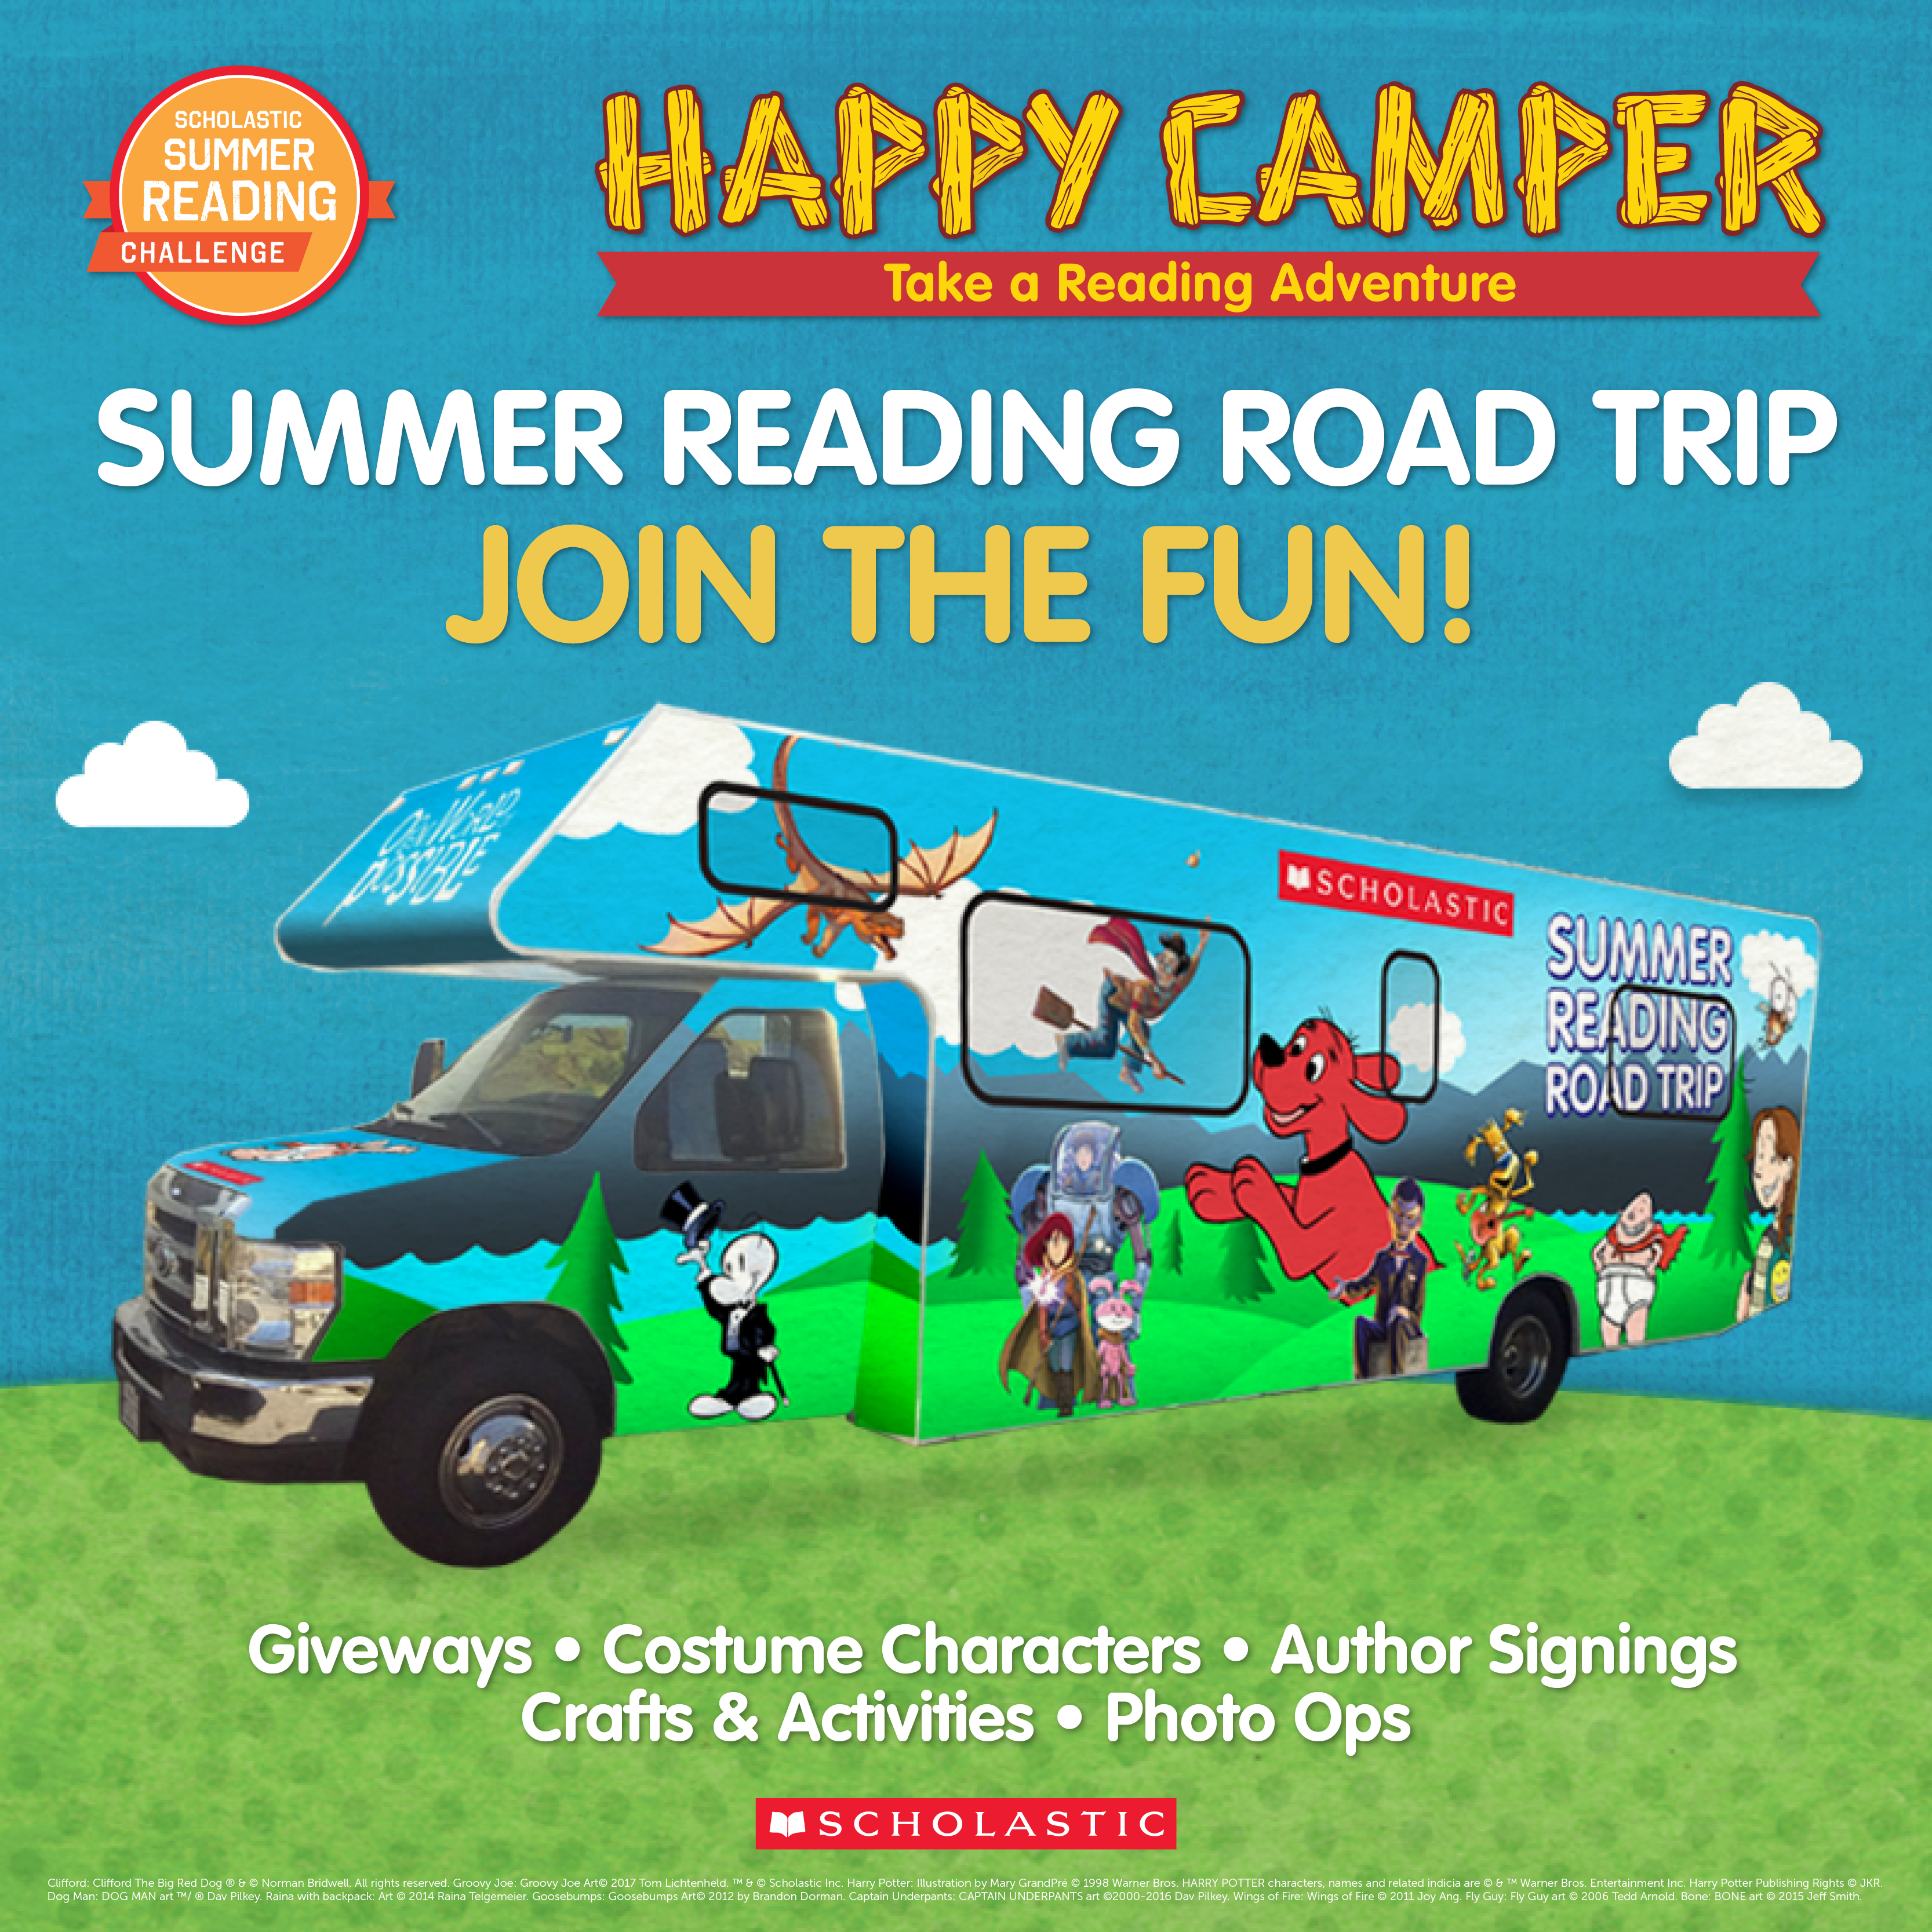 Kids Summer Reading Adventure Starts Now With The 2017 Scholastic  Summer Reading Challenge And Reading Road